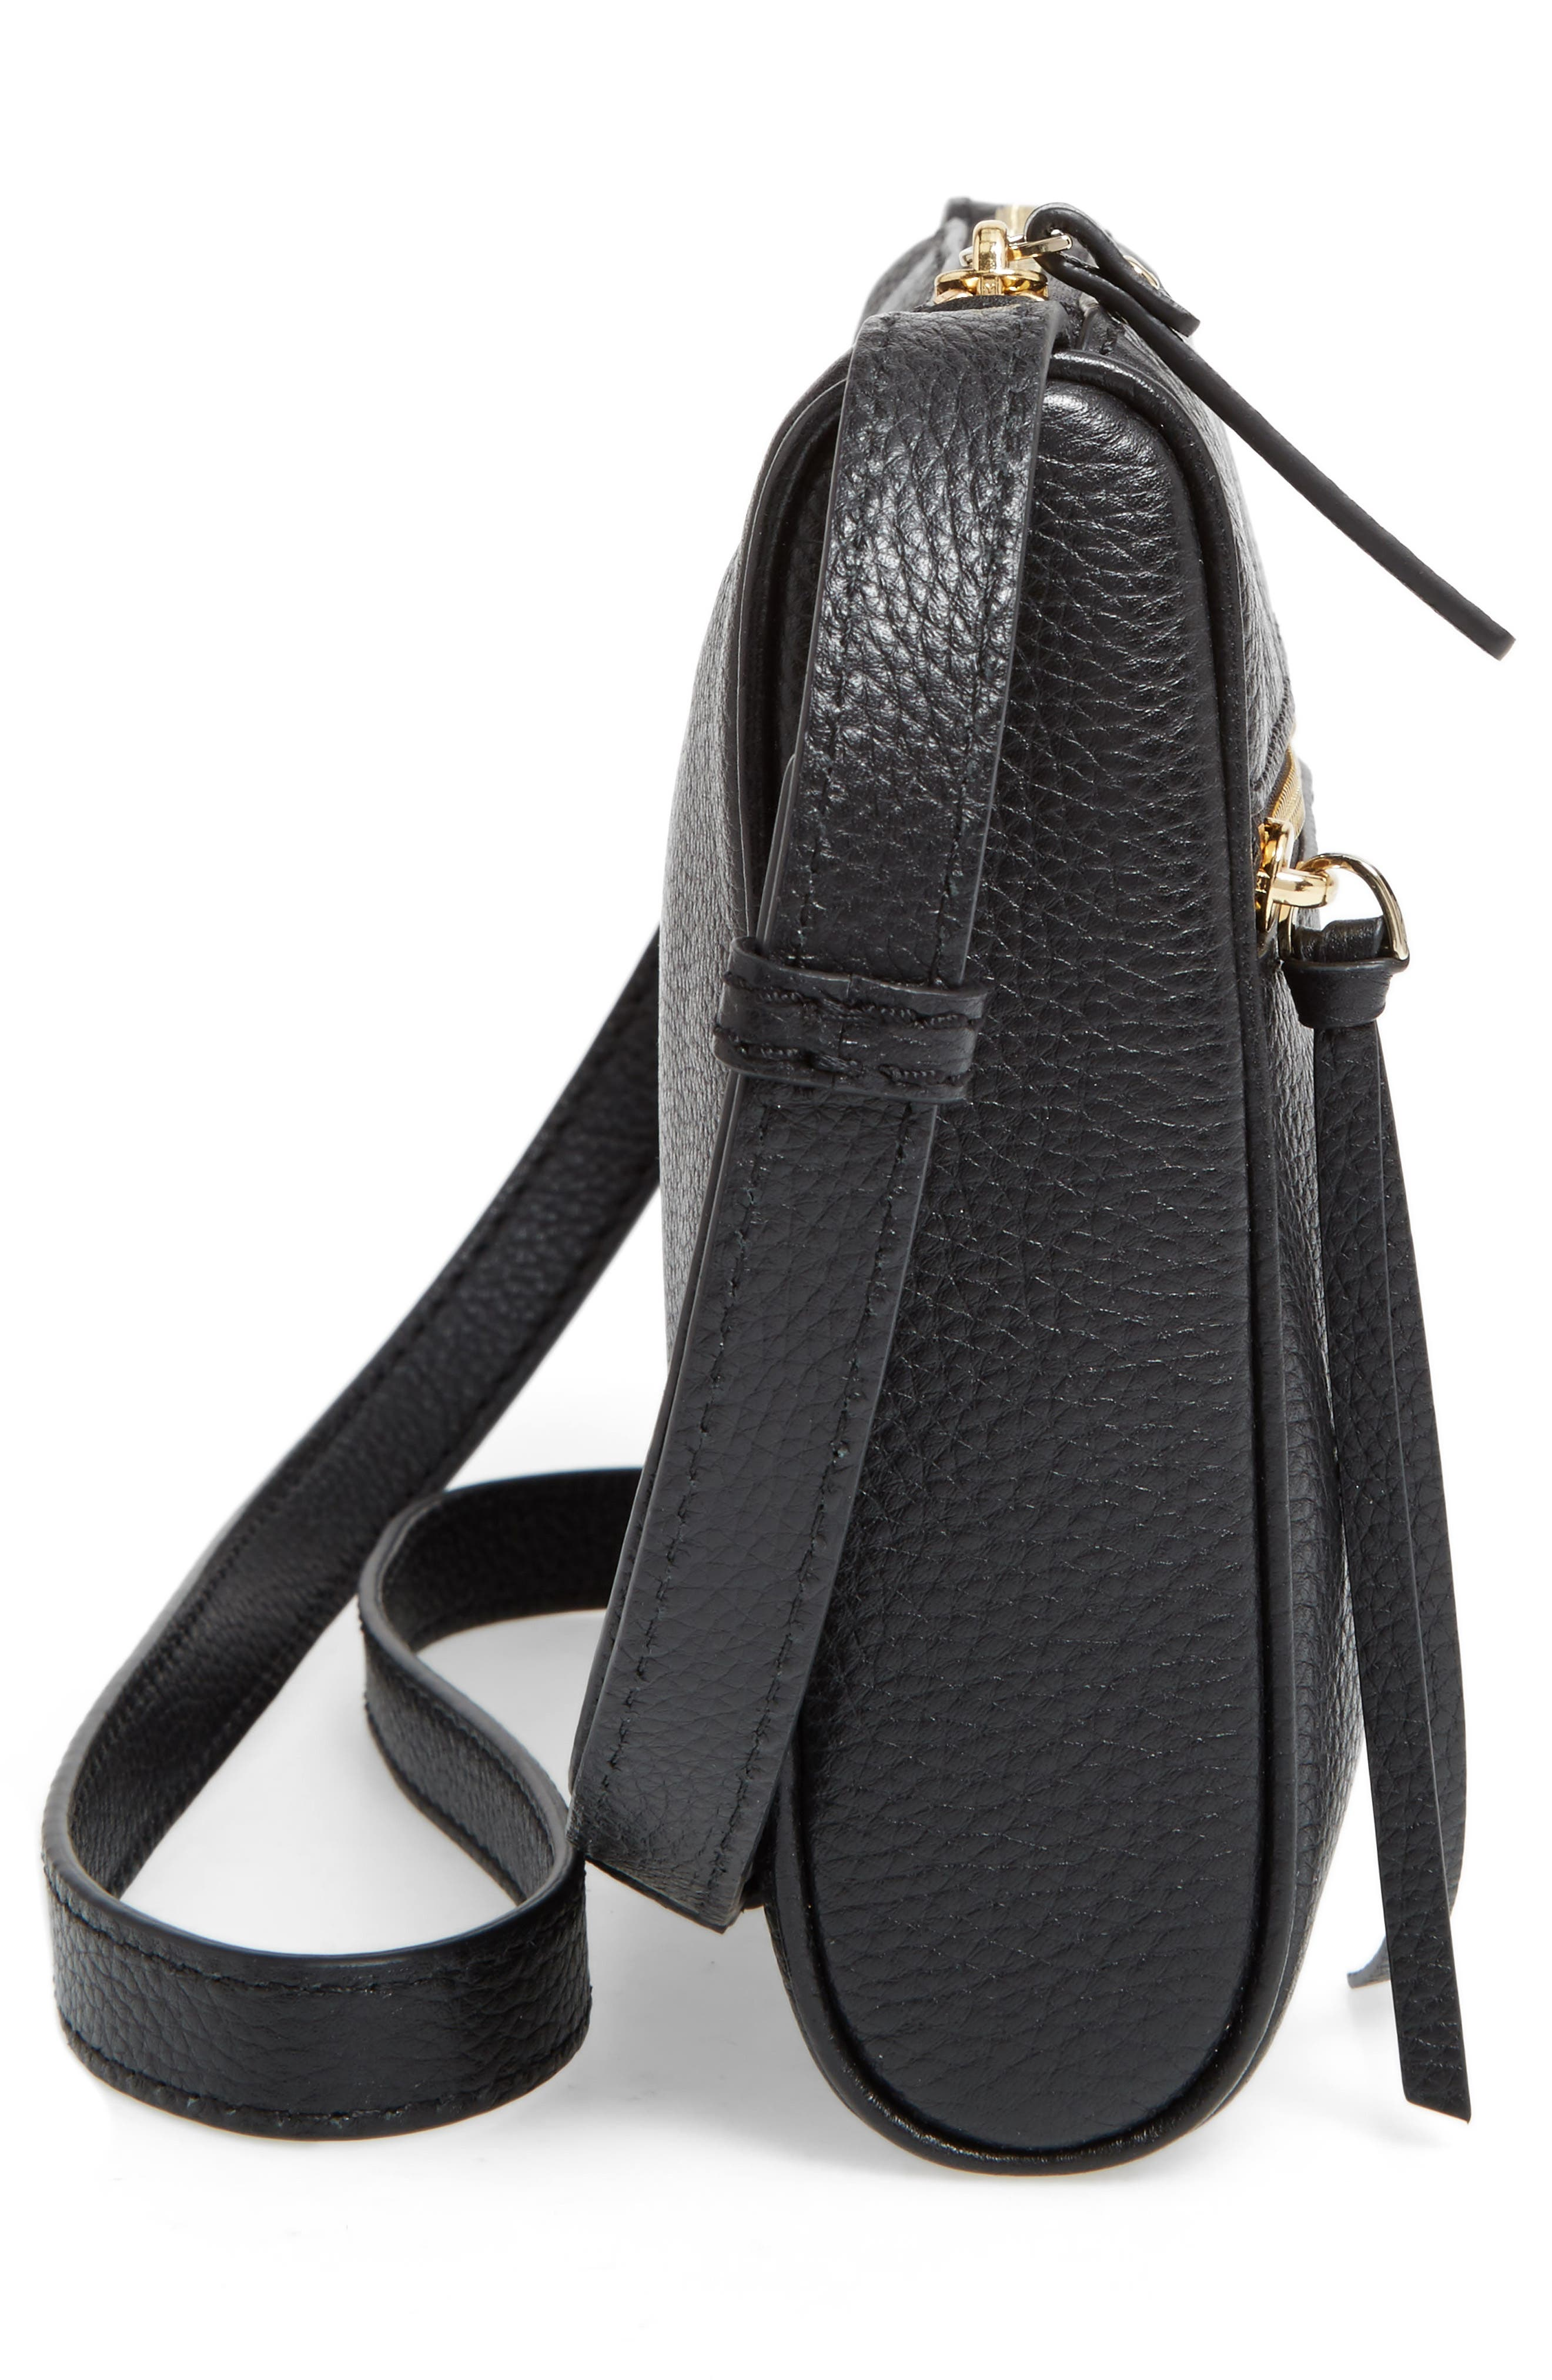 young lane - cayli leather crossbody bag,                             Alternate thumbnail 5, color,                             001